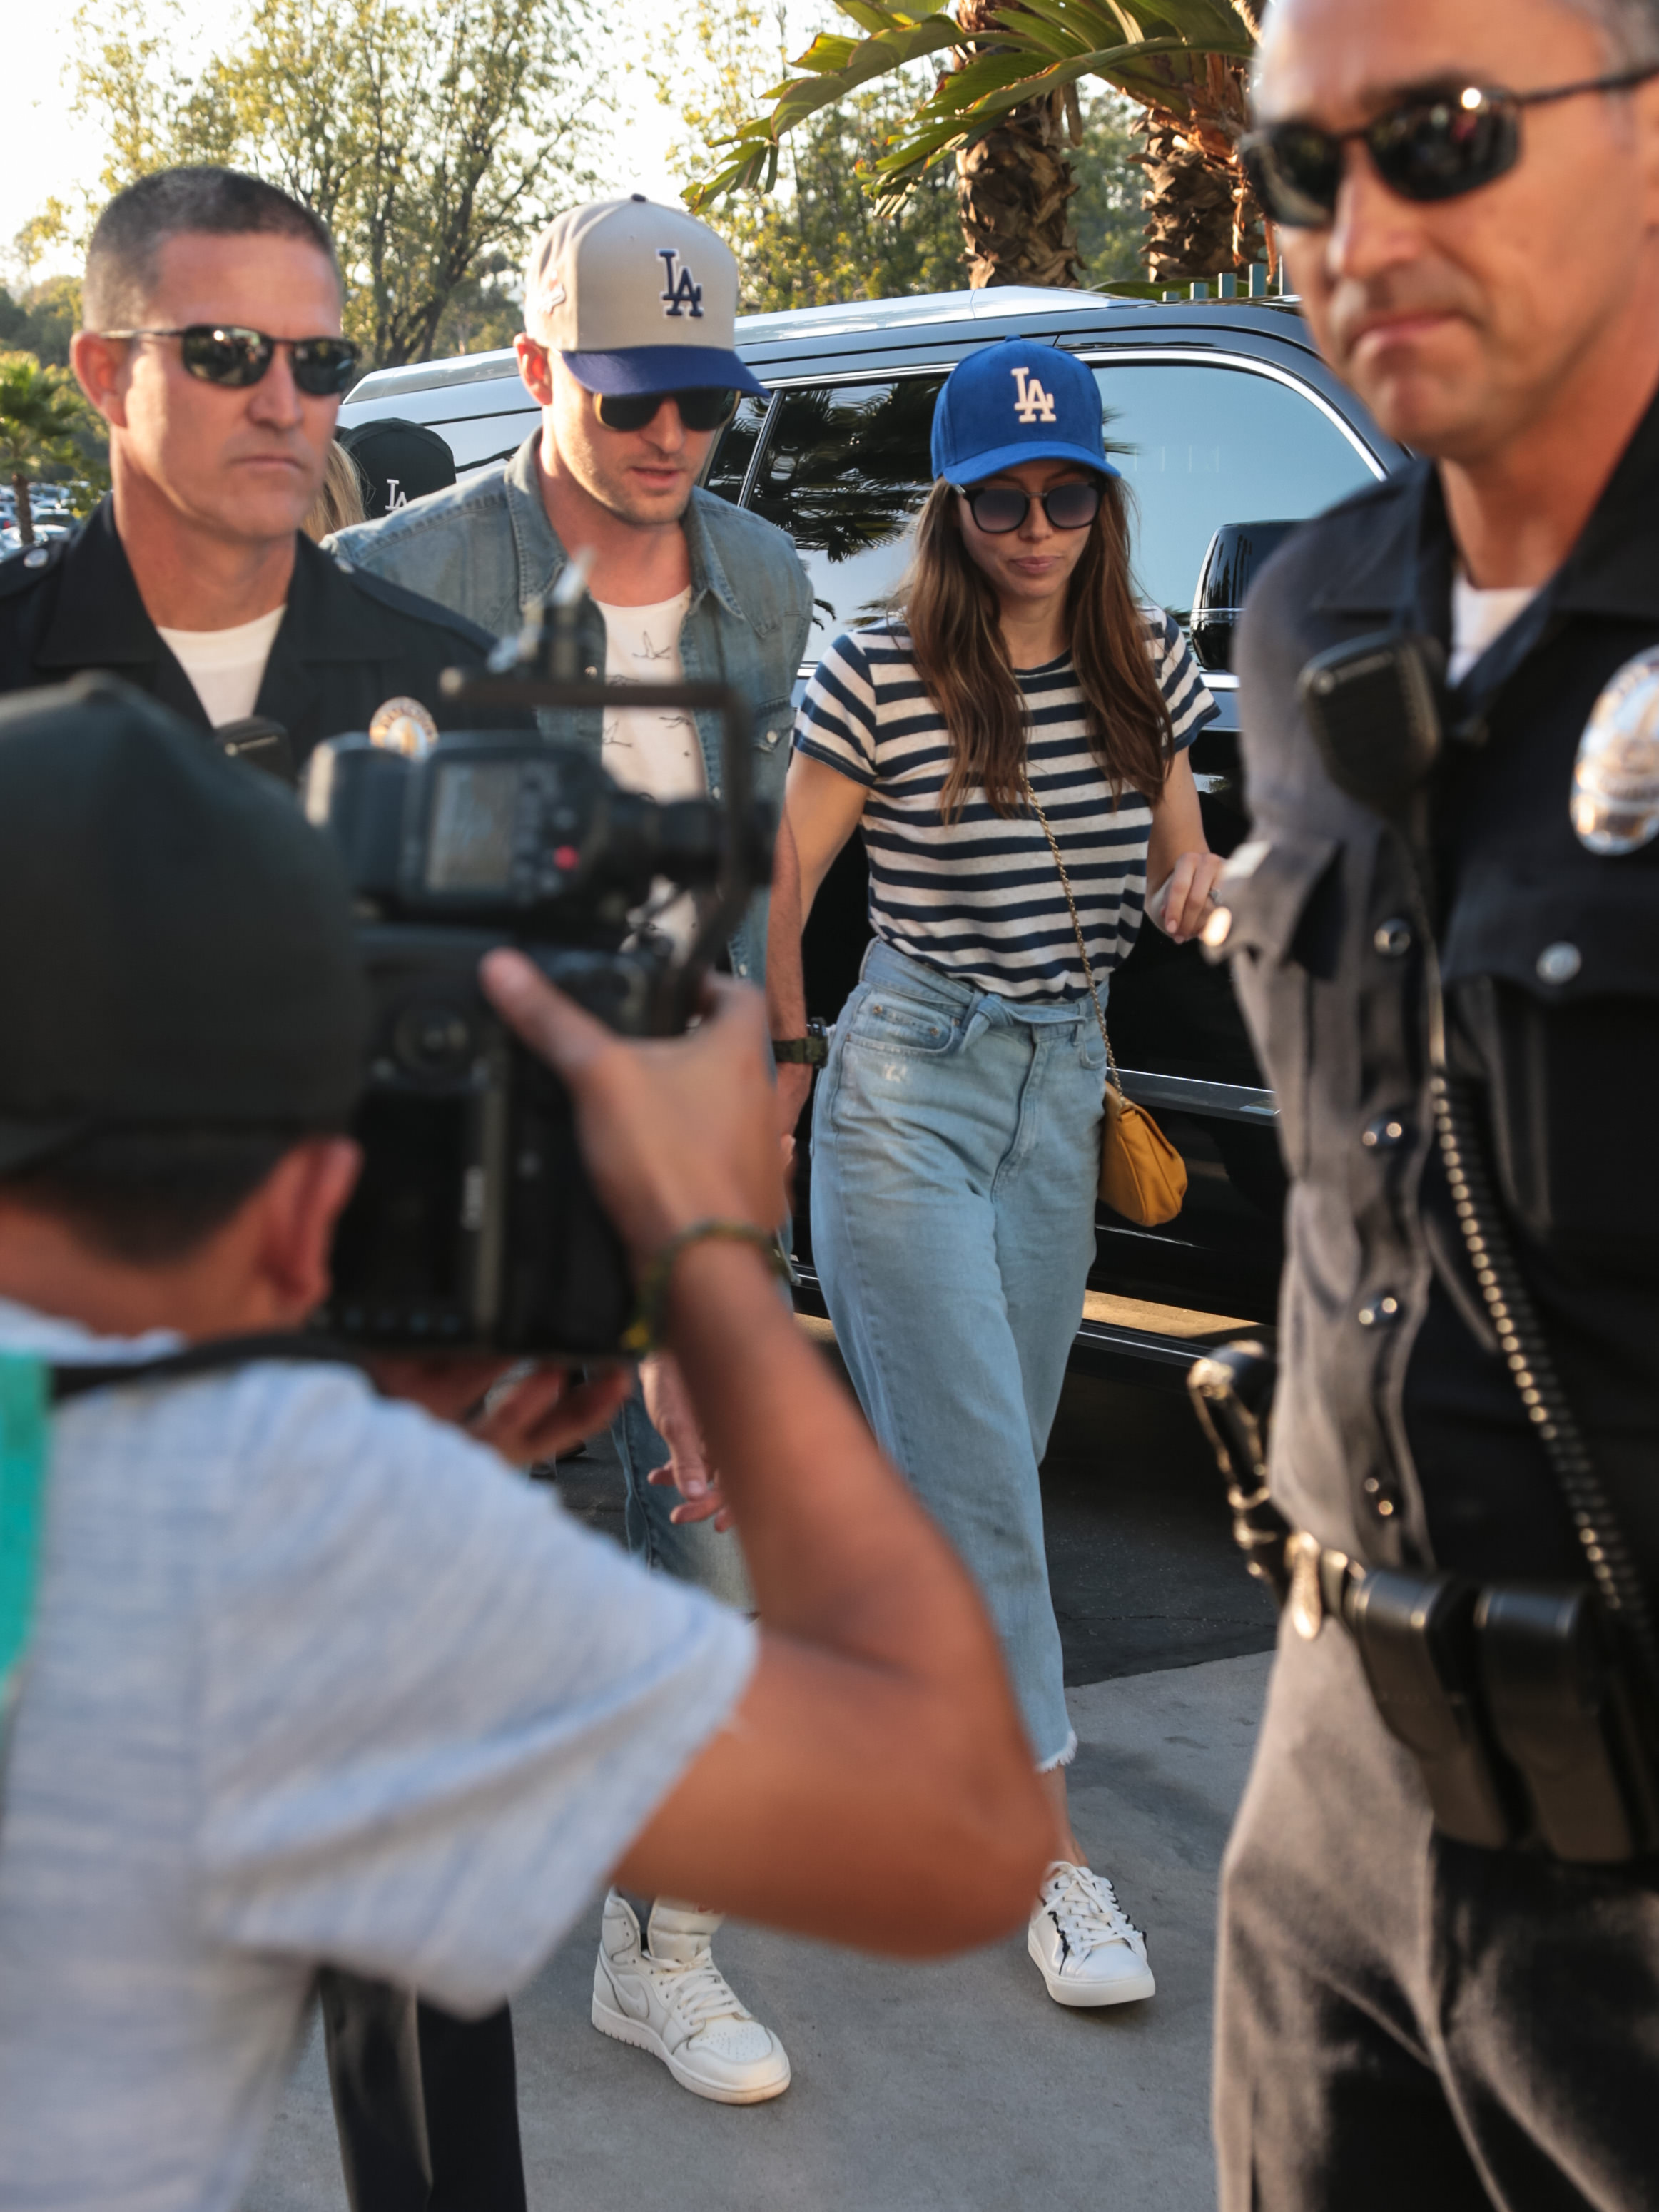 "<div class=""meta image-caption""><div class=""origin-logo origin-image none""><span>none</span></div><span class=""caption-text"">Justin Timberlake and Jessica Biel are seen arriving at game two of the World Series. (Getty Images)</span></div>"